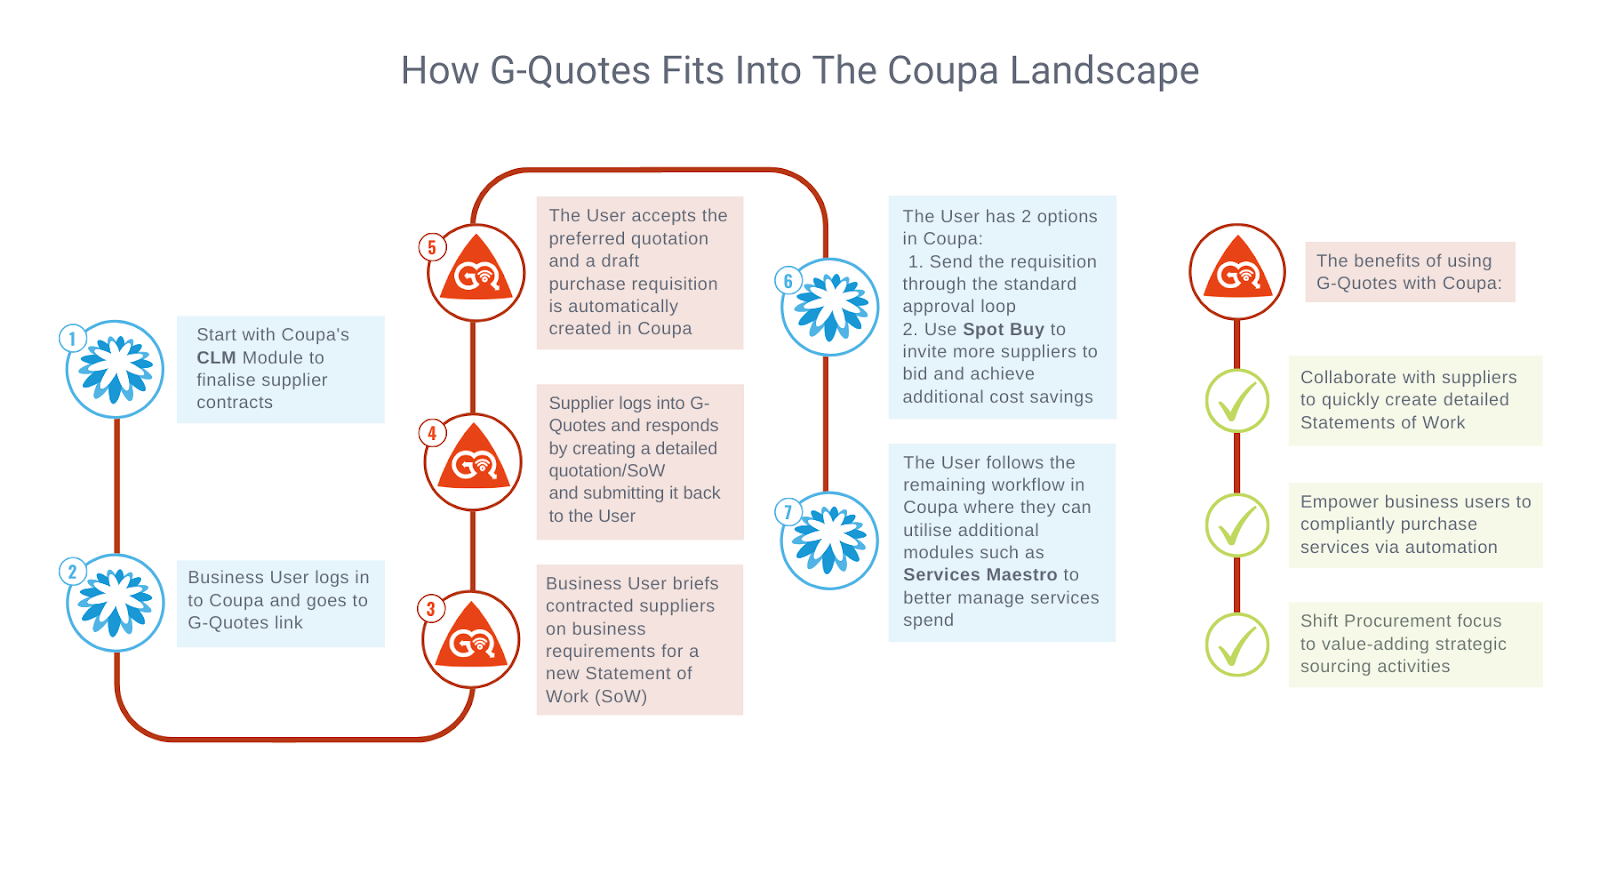 How G-Quotes Fits Into the Coupa Landscape